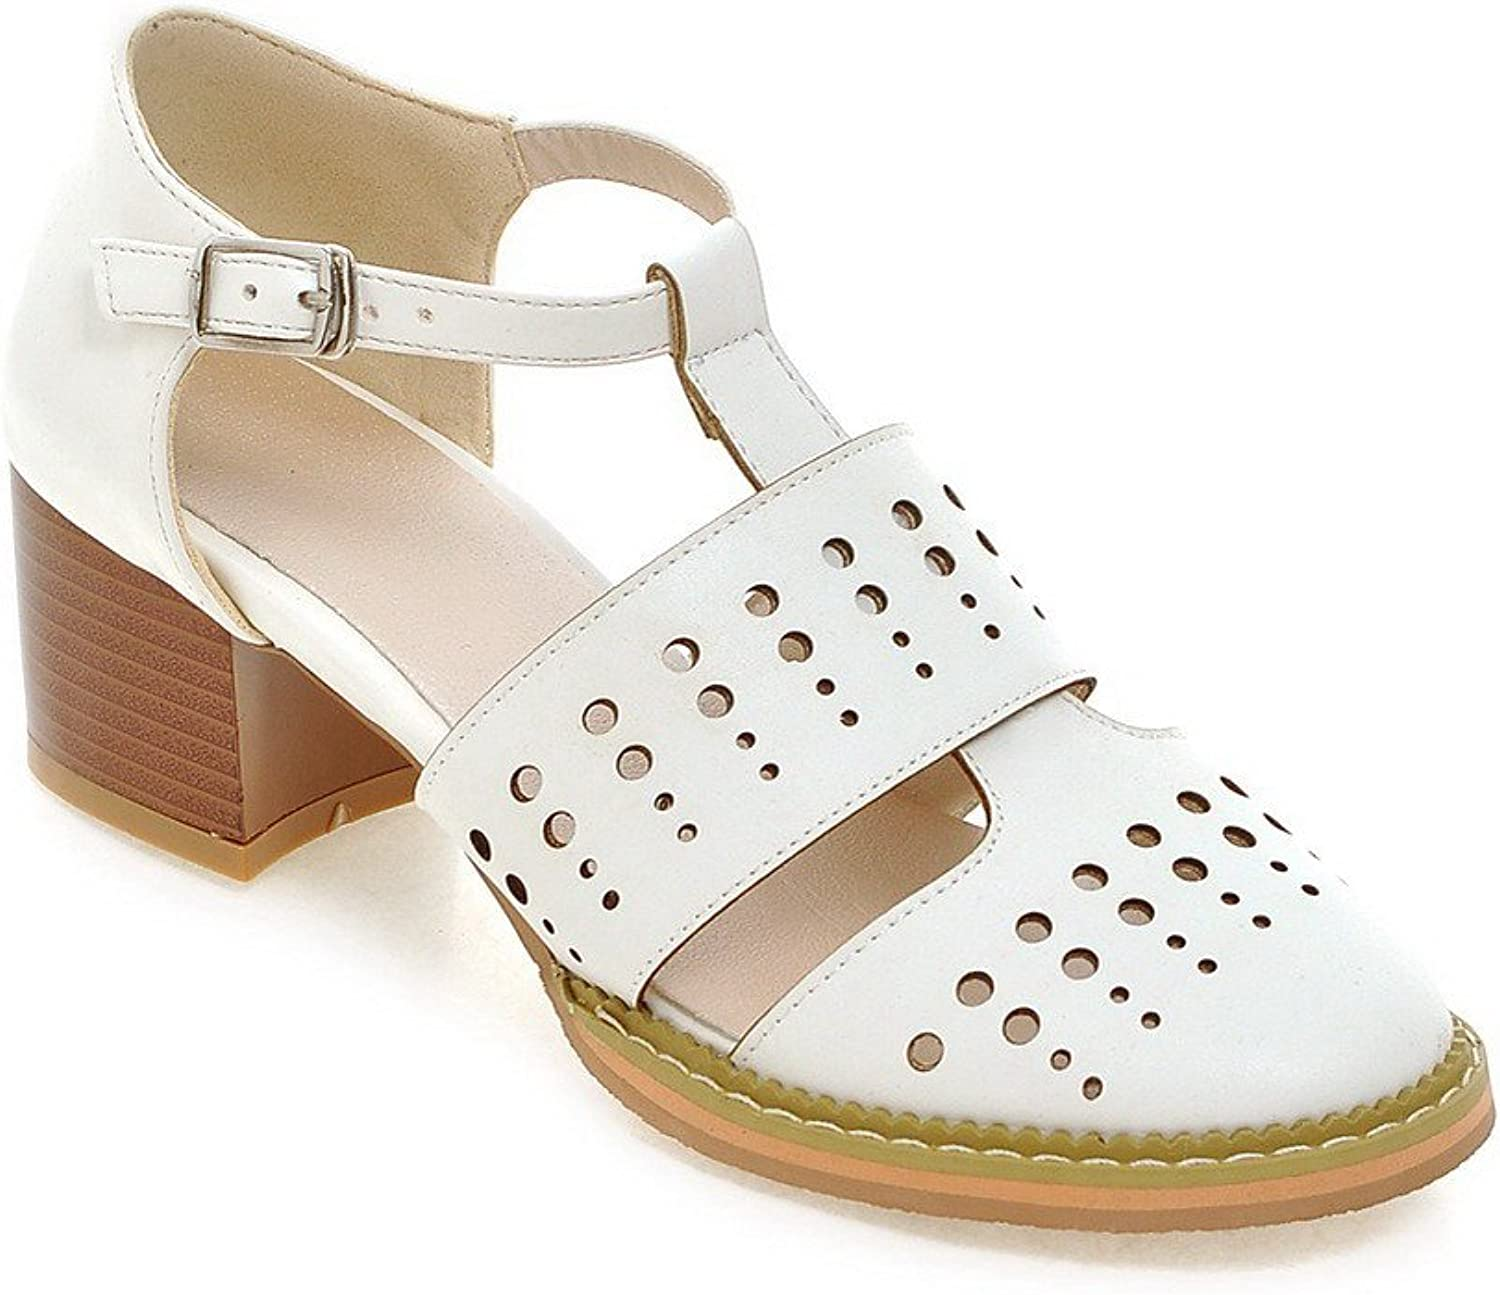 AmoonyFashion Women's Buckle Blend Materials Round Closed Toe Kitten Heels Solid Pumps shoes